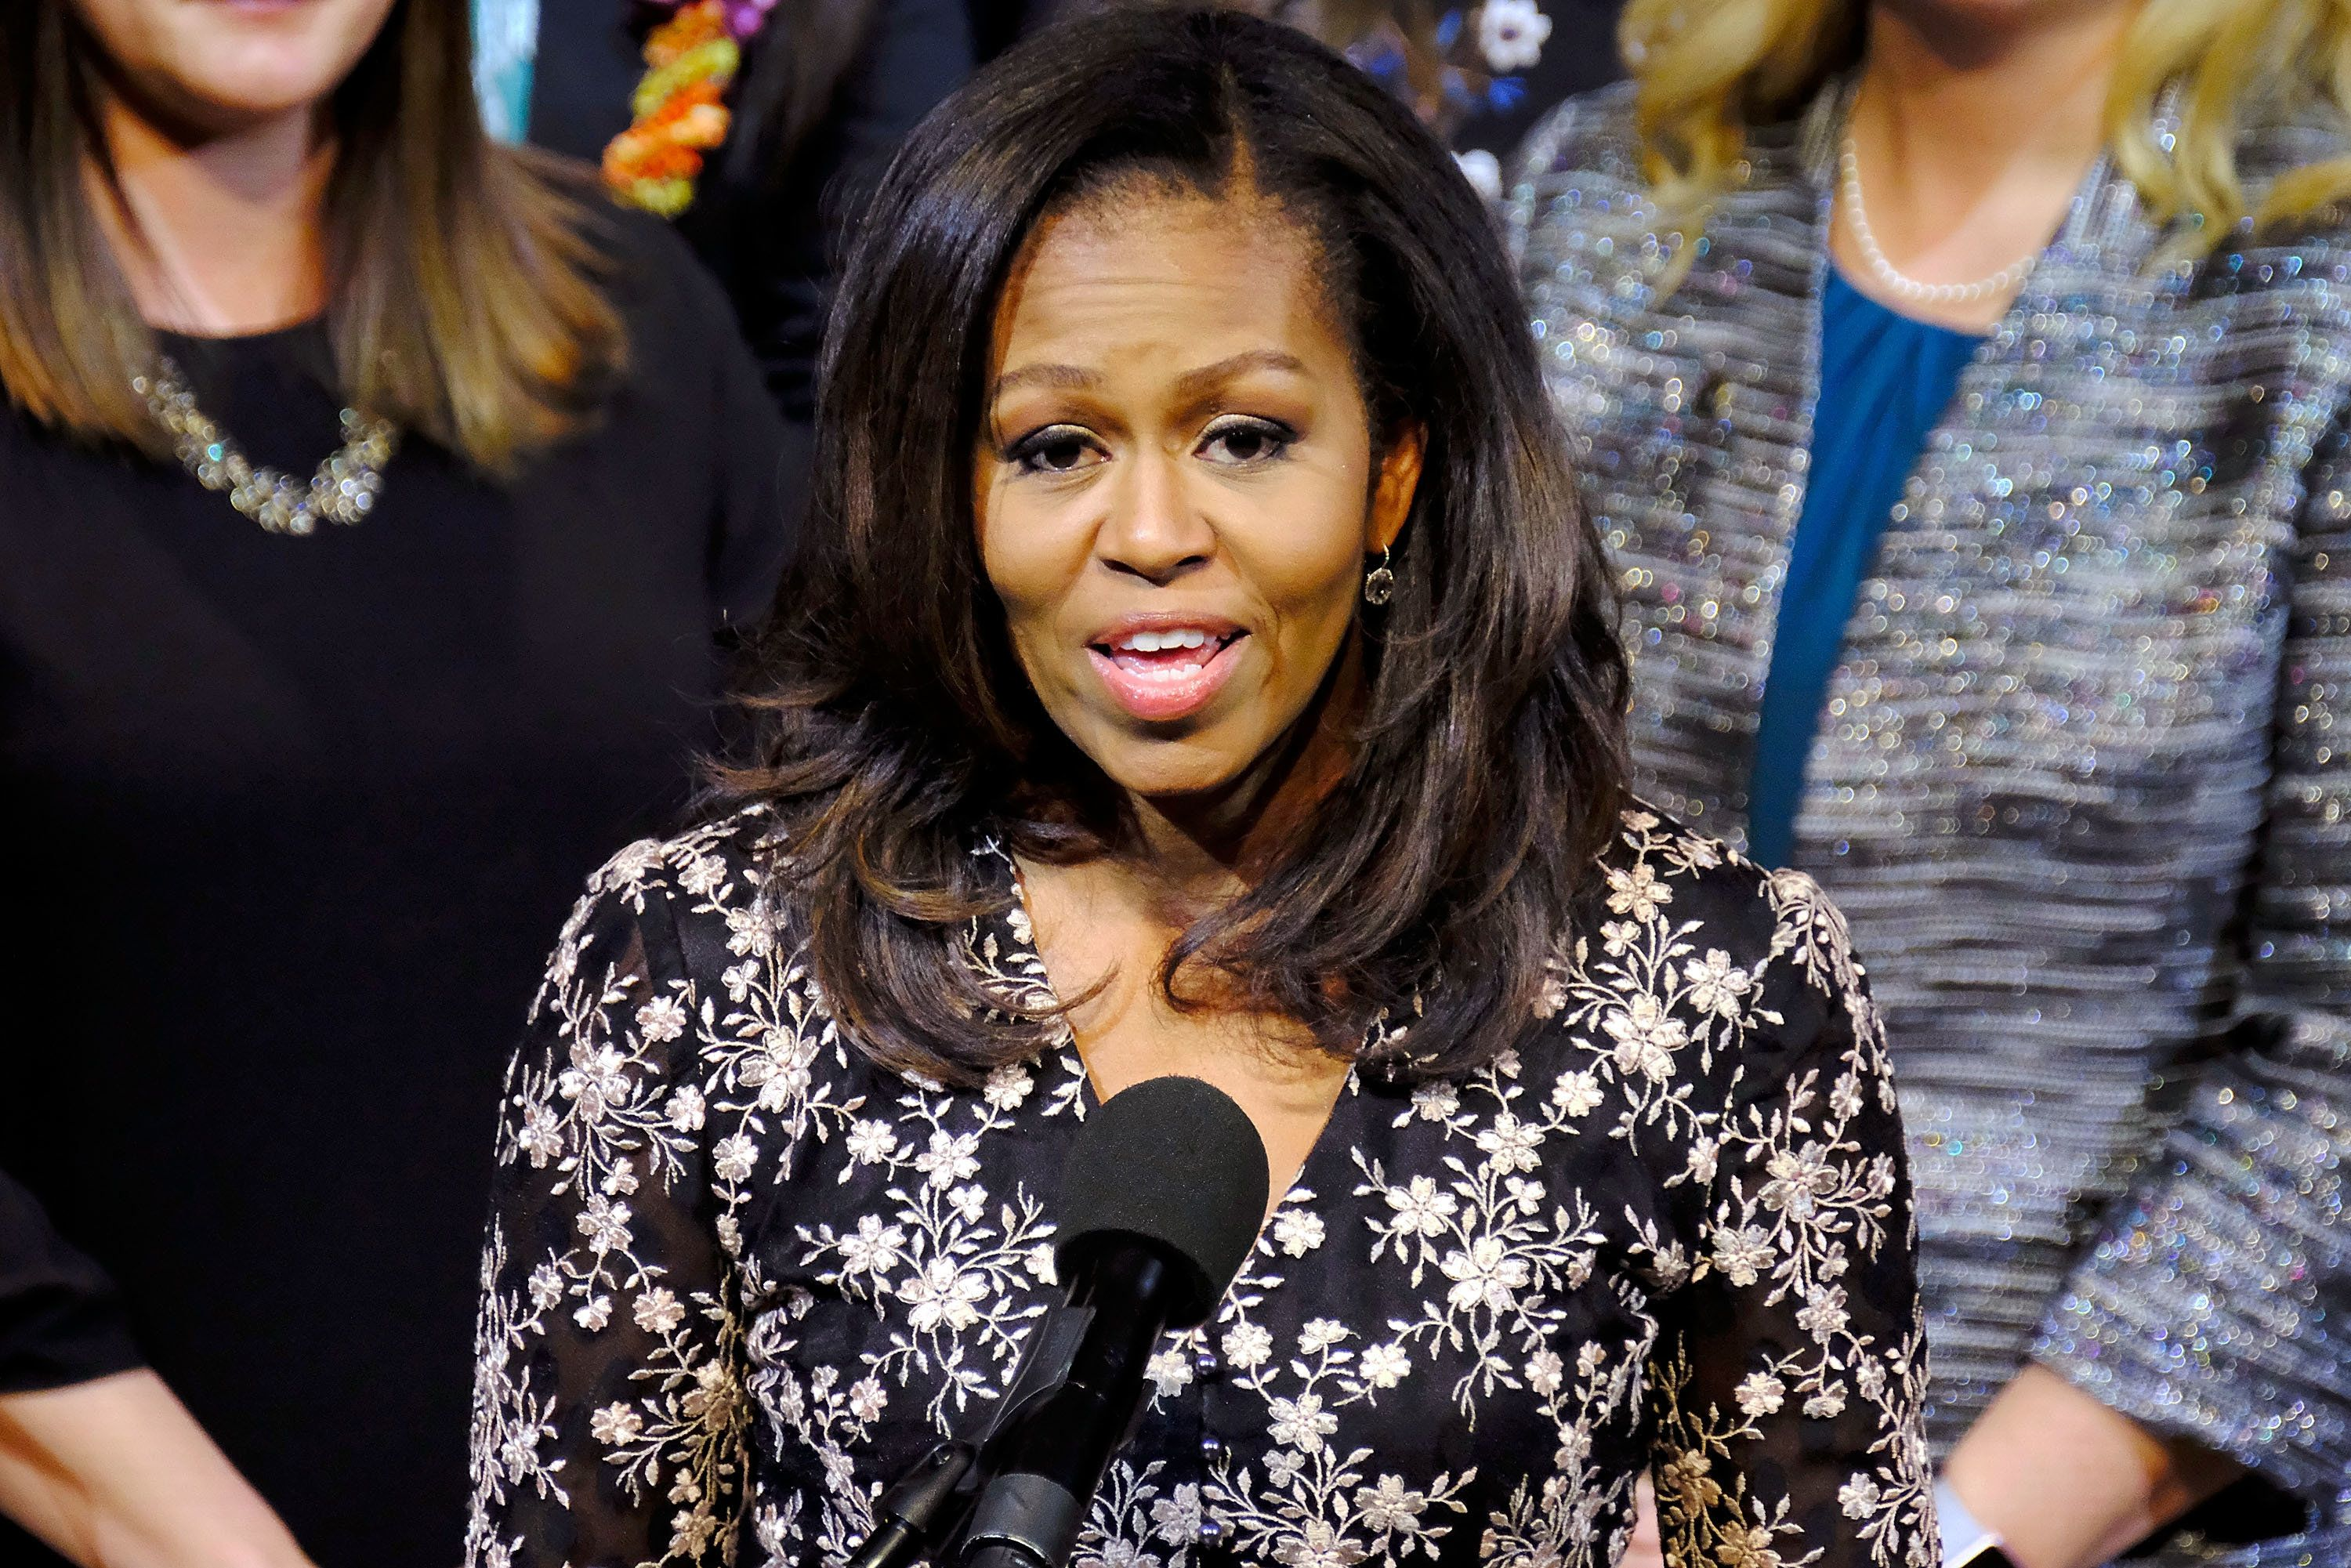 Michelle Obama, pictured earlier this month, seemed to again diss President Donald Trump's tweeting habits on Tuesday.